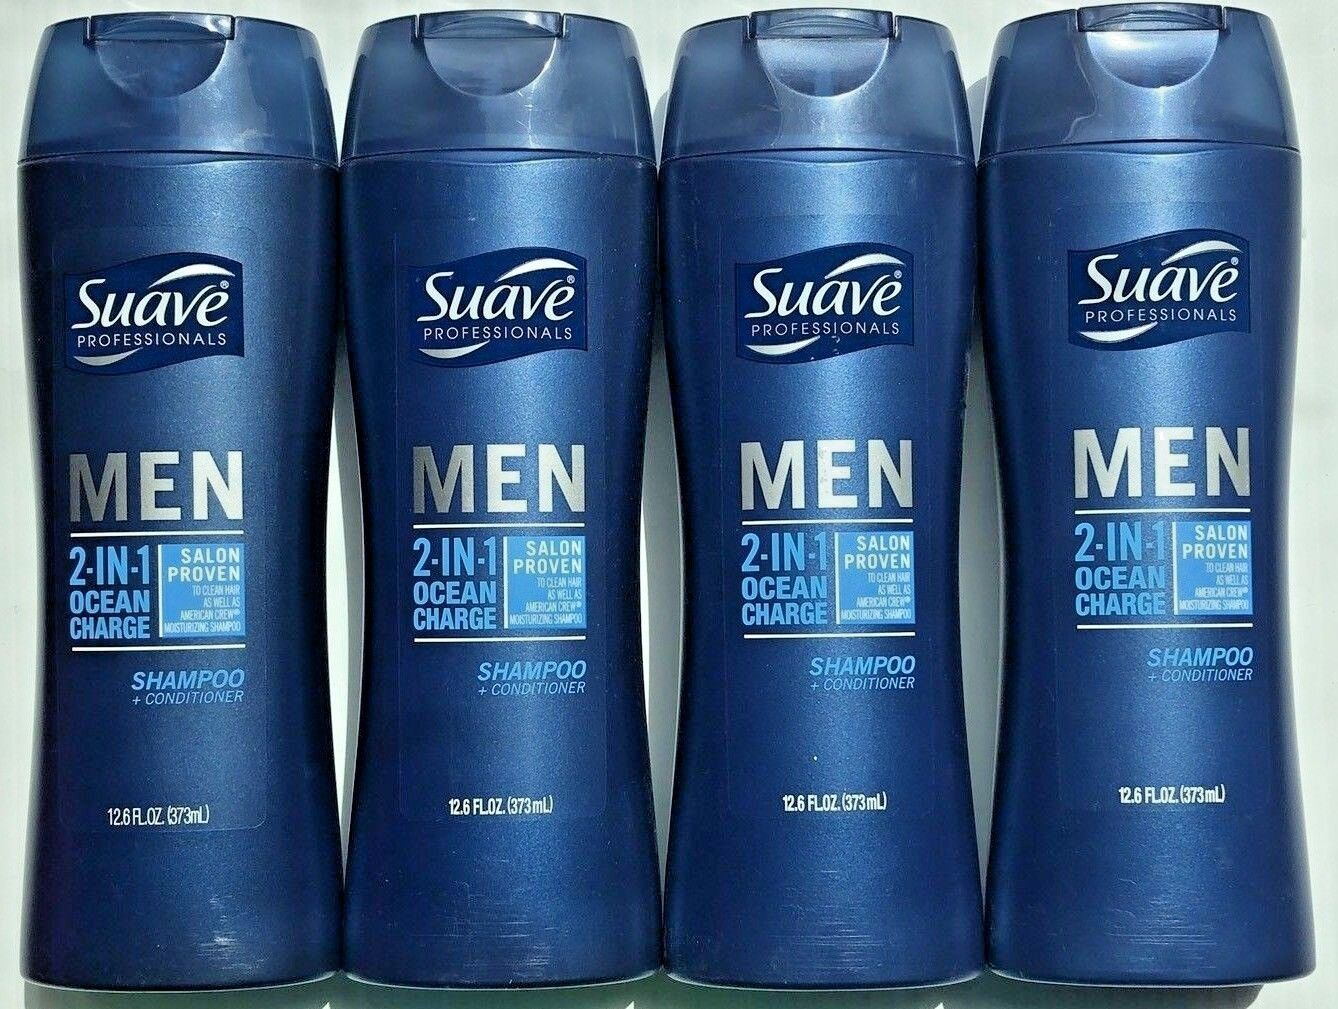 4 NEW SUAVE MEN DAILY CLEAN OCEAN CHARGE 2in1 SHAMPOO + CONDITIONERS